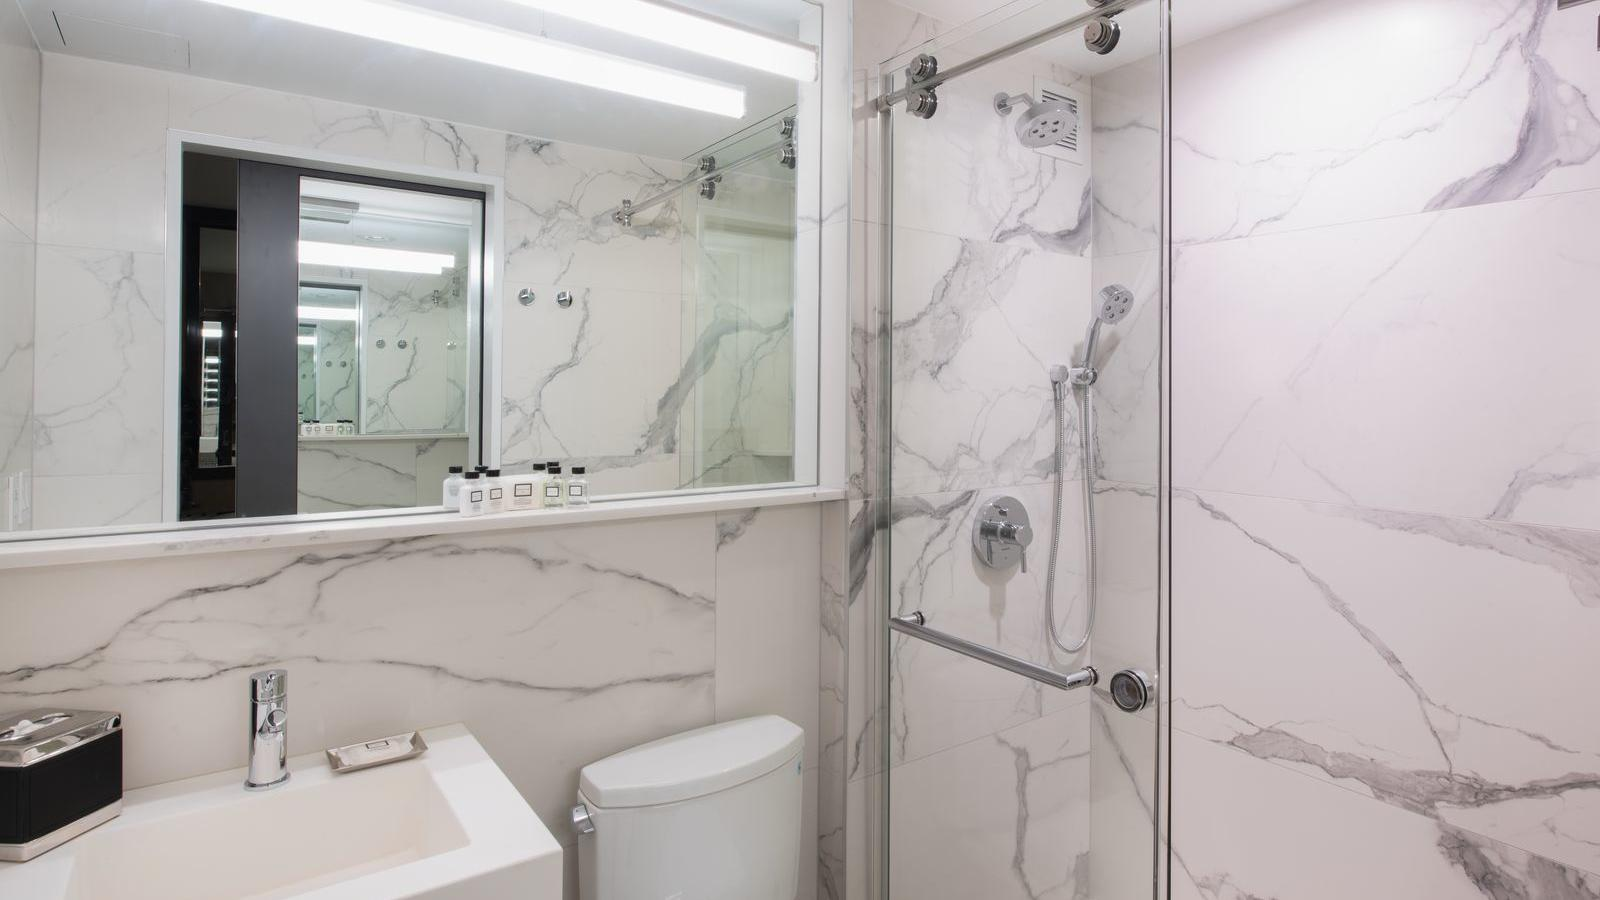 Hotel bathroom with standing shower.